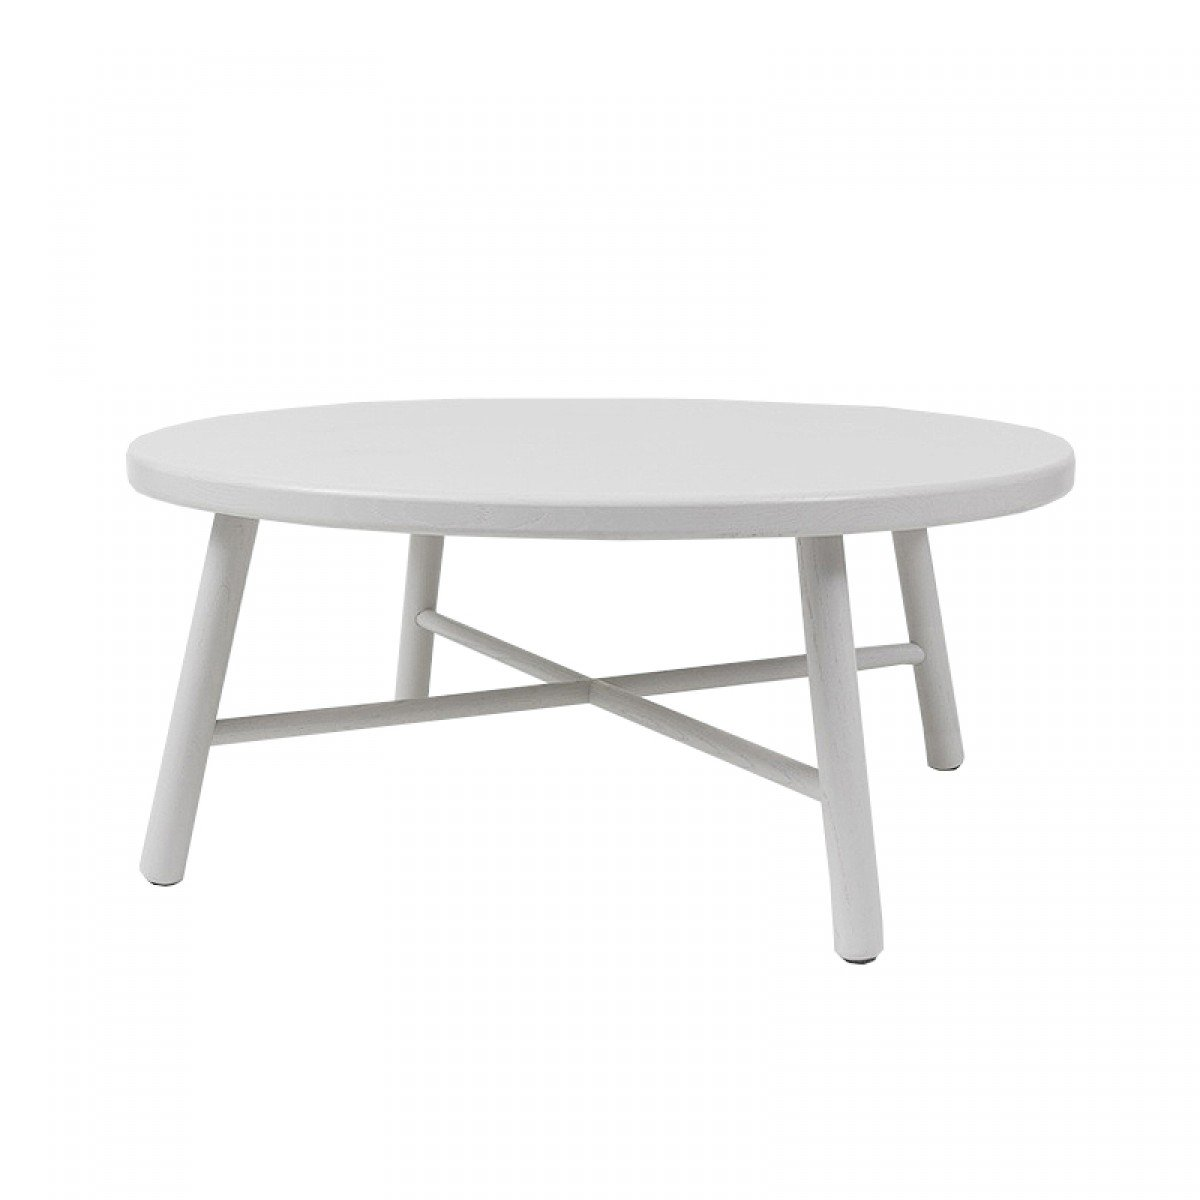 Life Interiors - Nord Coffee Table in mist -  SHOP